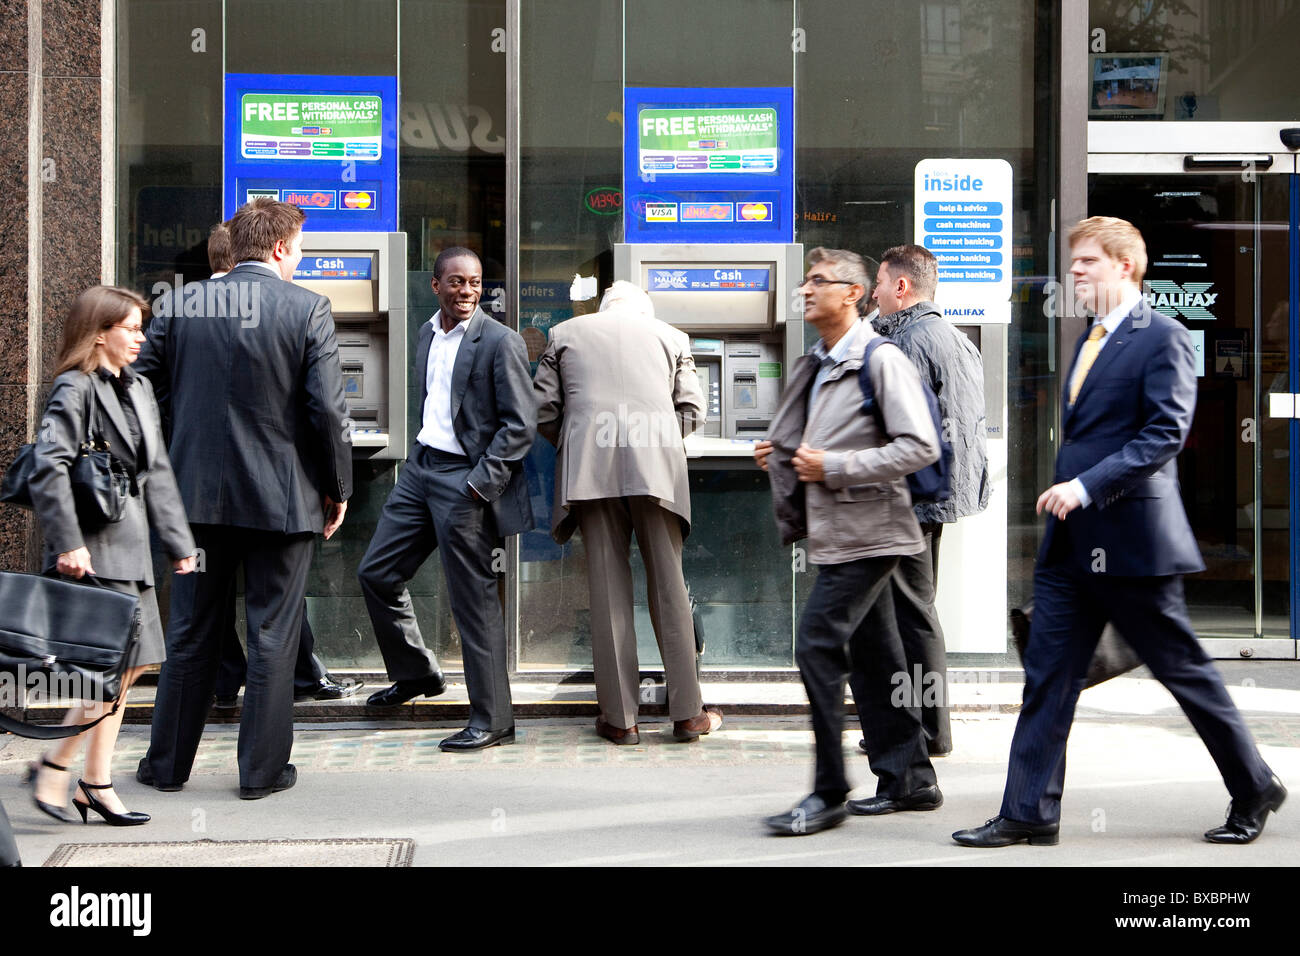 Passers-by at the cash machine of the Halifax Bank in London, England, United Kingdom, Europe - Stock Image